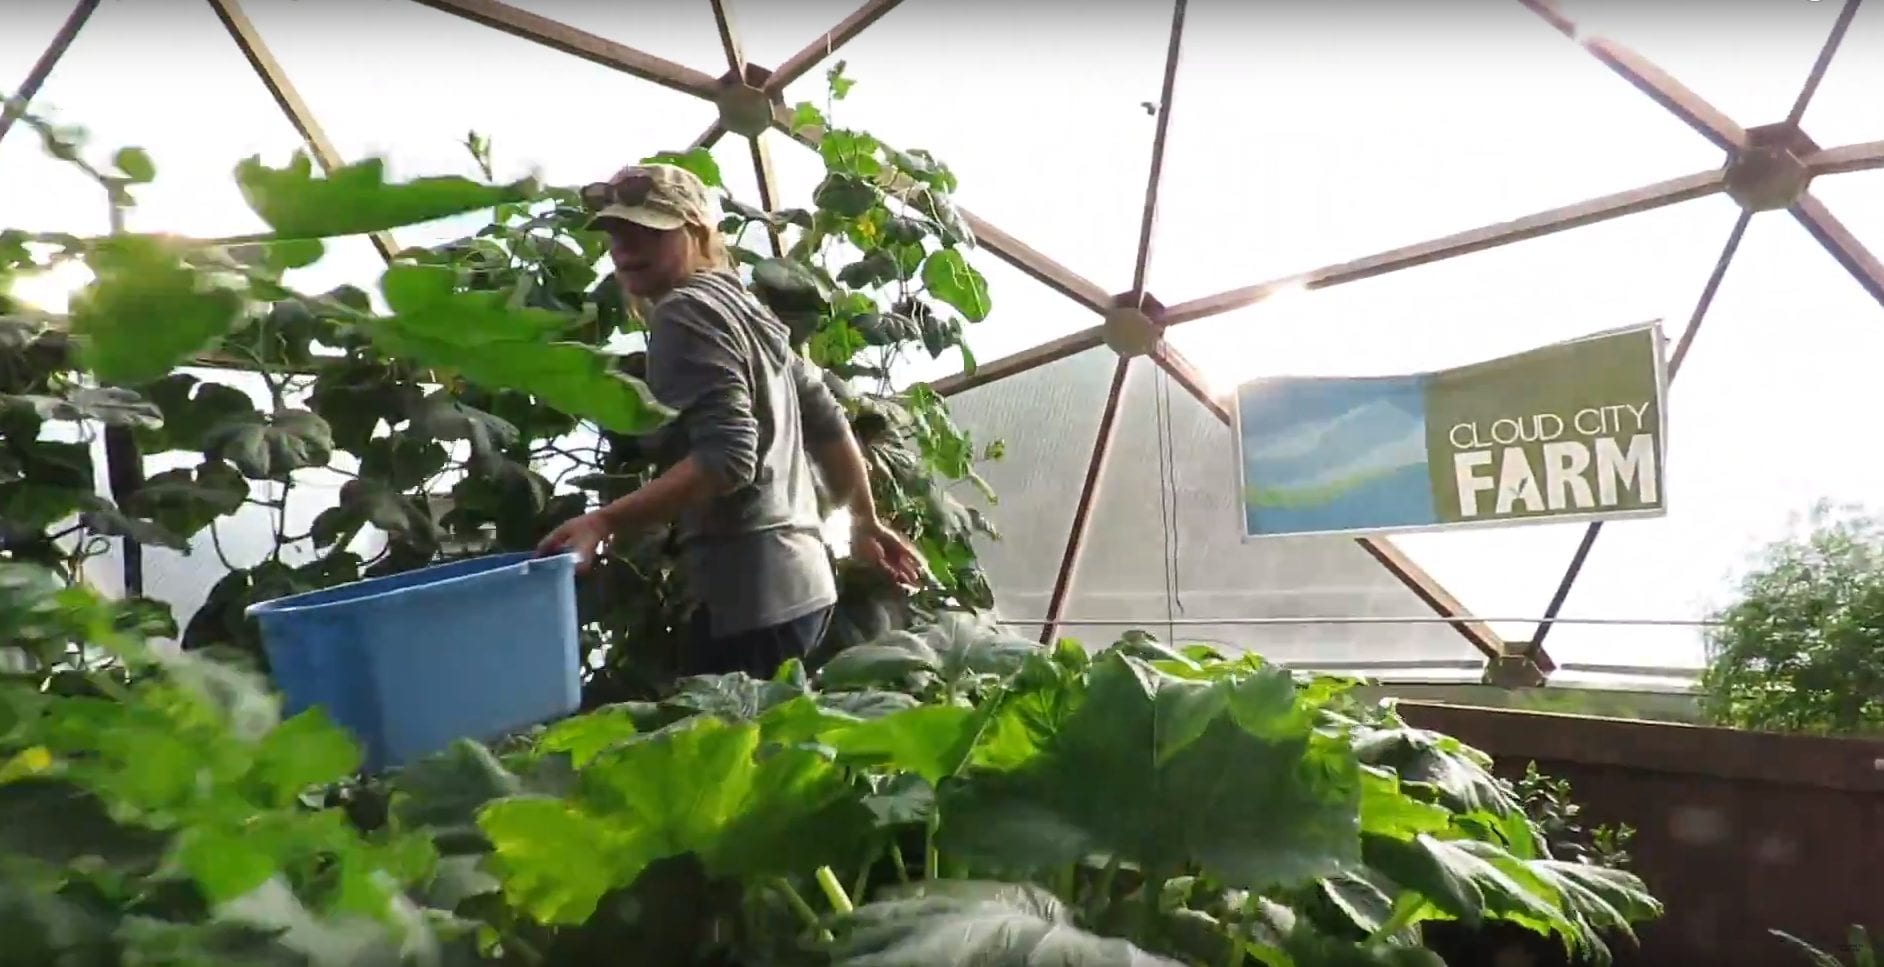 Cloud City Conservation Center Grow Dome from Growing Spaces